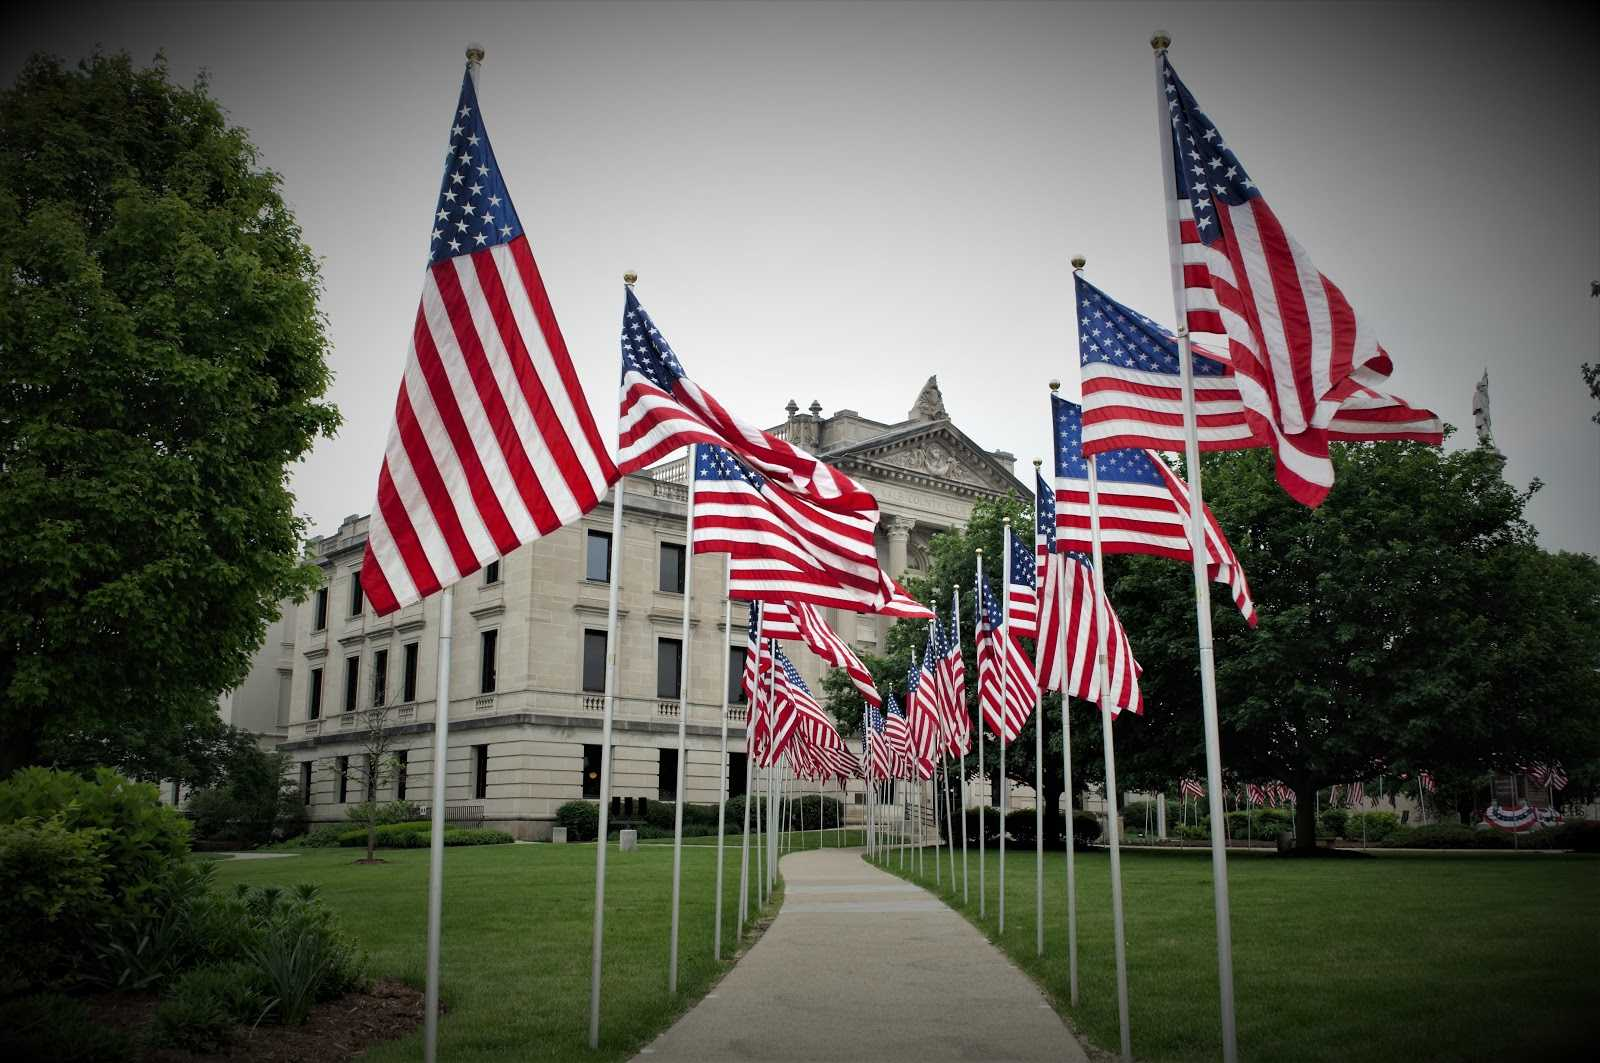 How to Increase VA Disability Rating from 80% to 100%